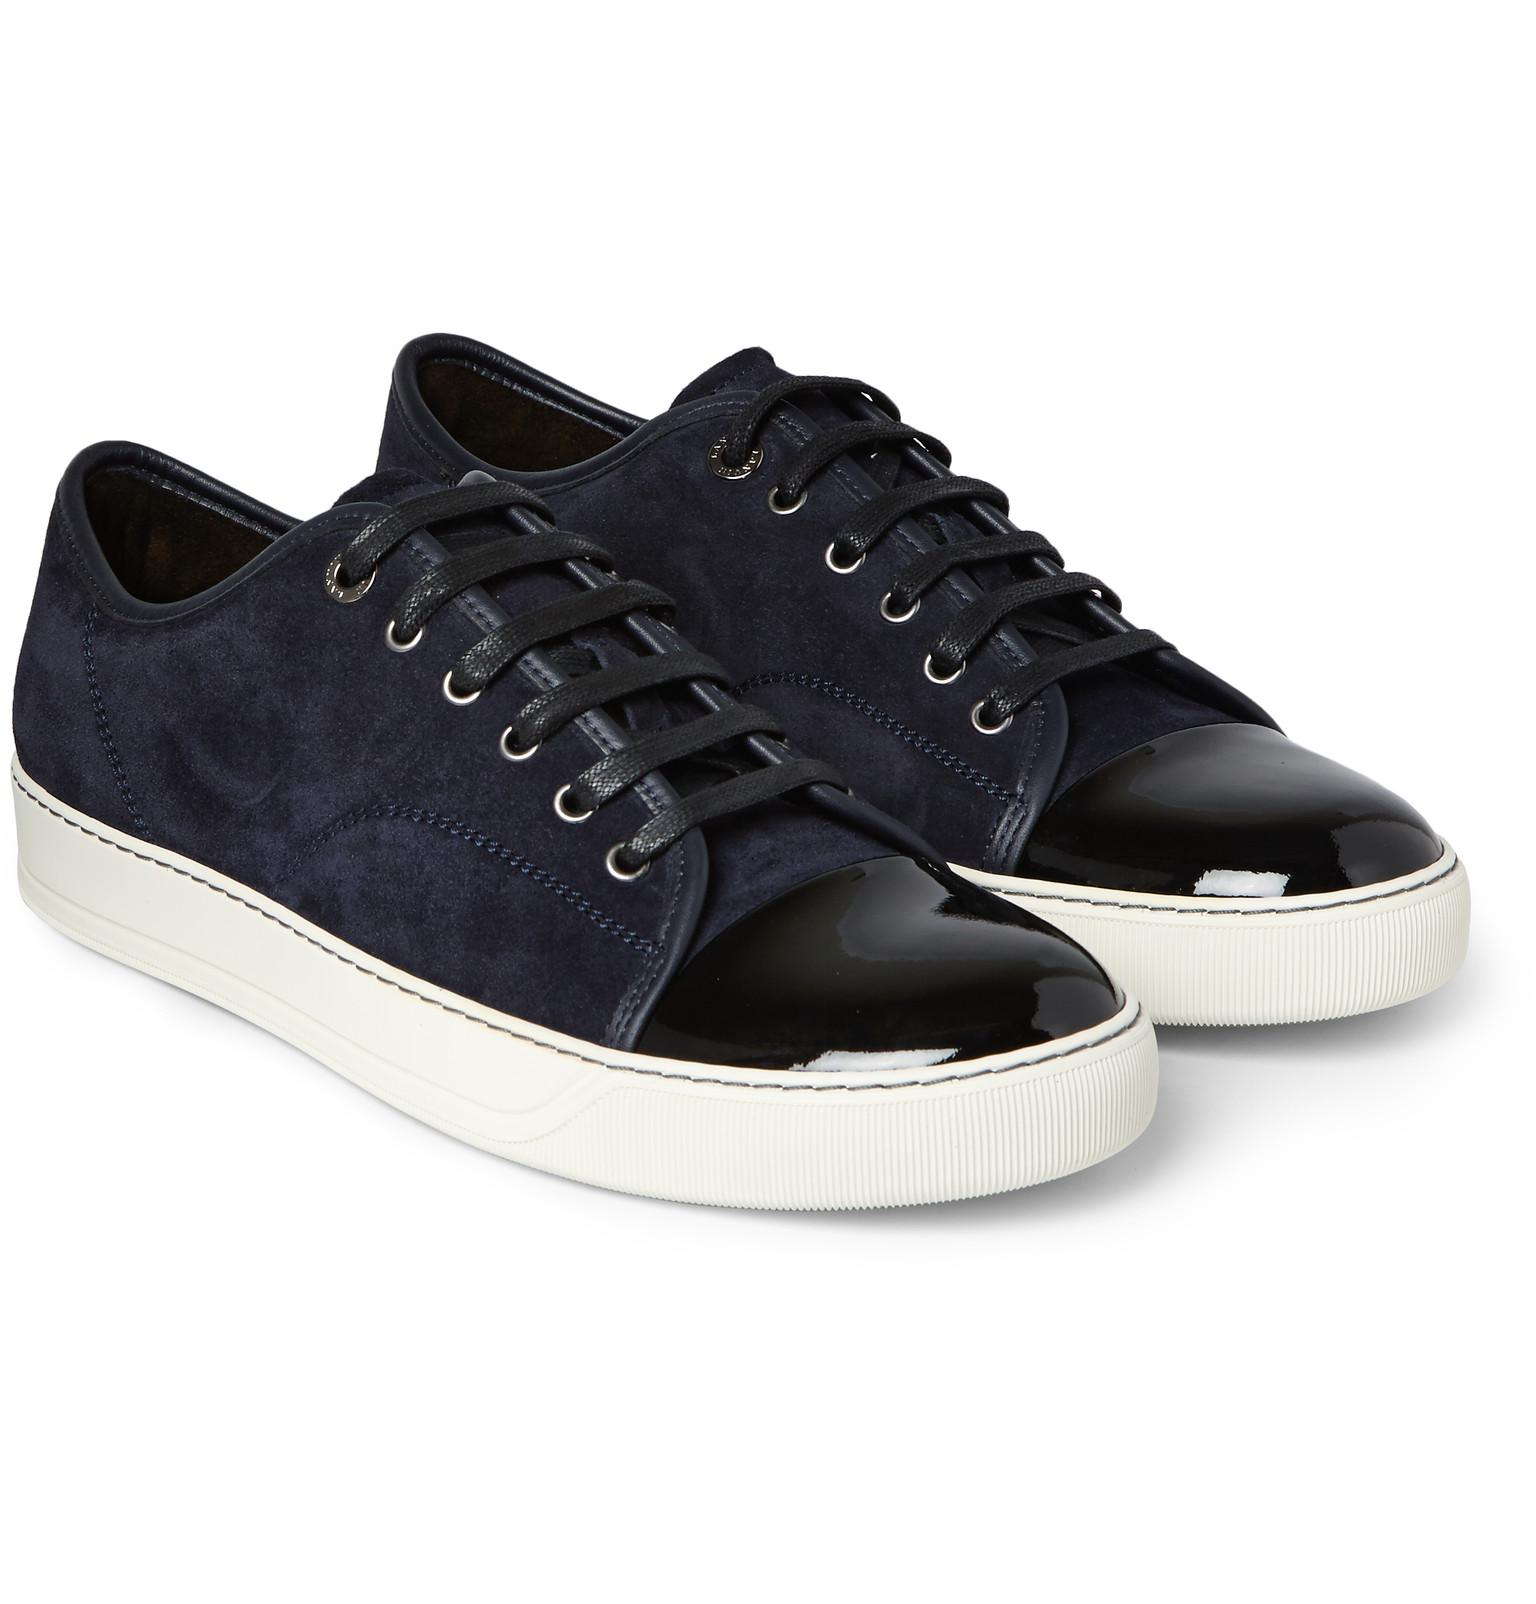 Cap-Toe Suede and Leather Sneakers White 6385568